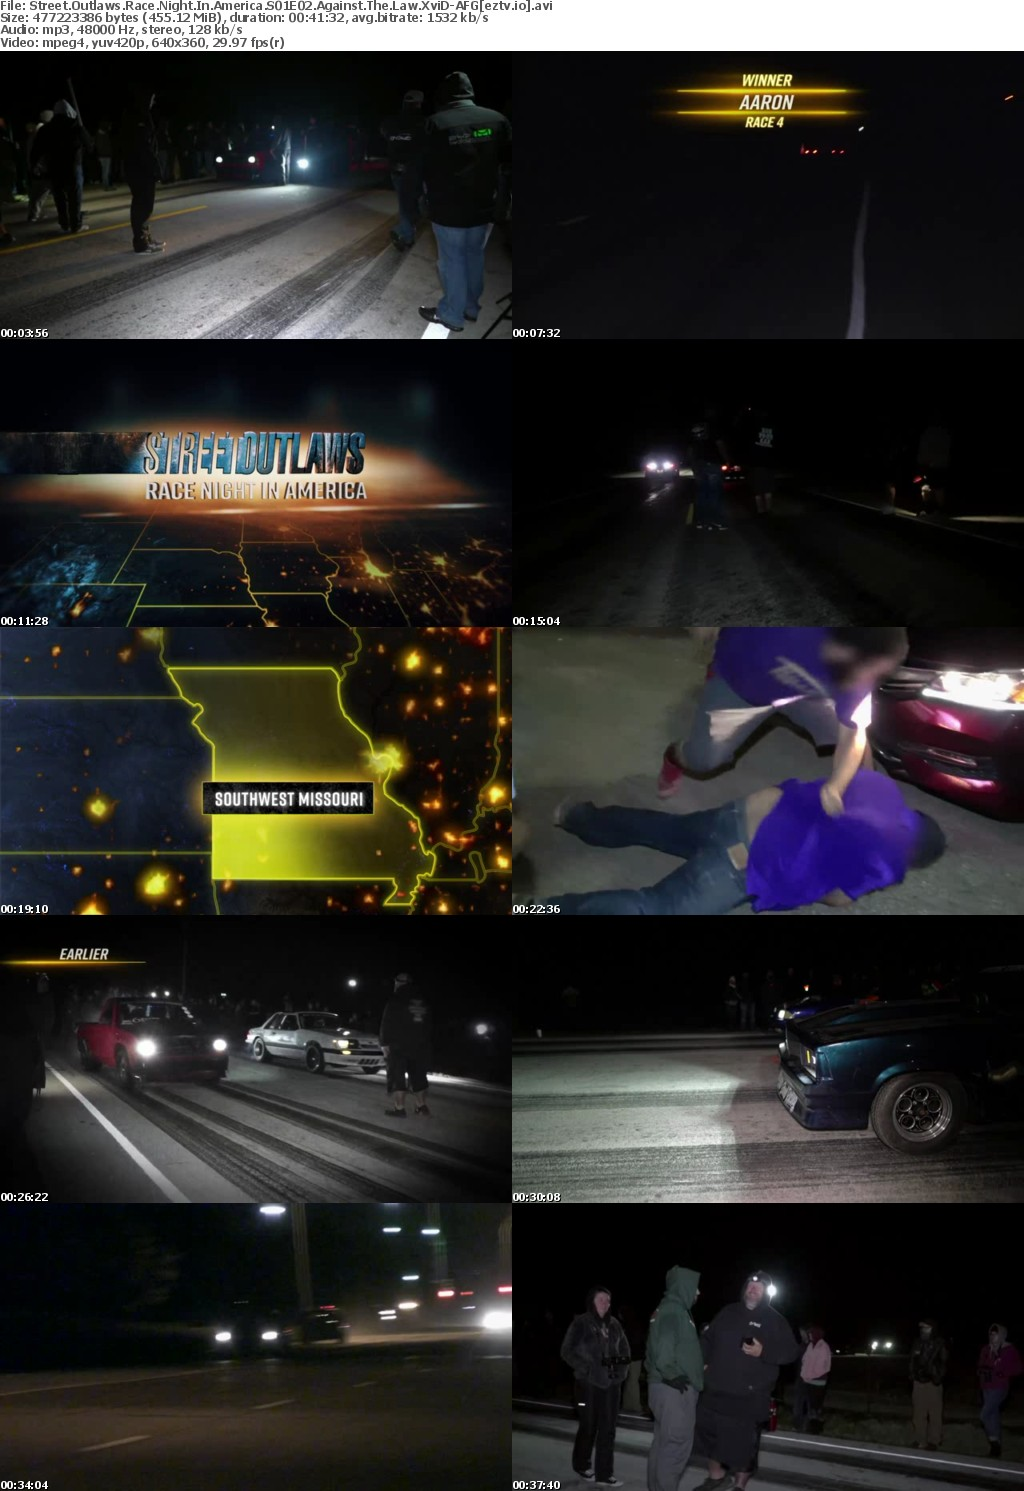 Street Outlaws Race Night In America S01E02 Against The Law XviD-AFG